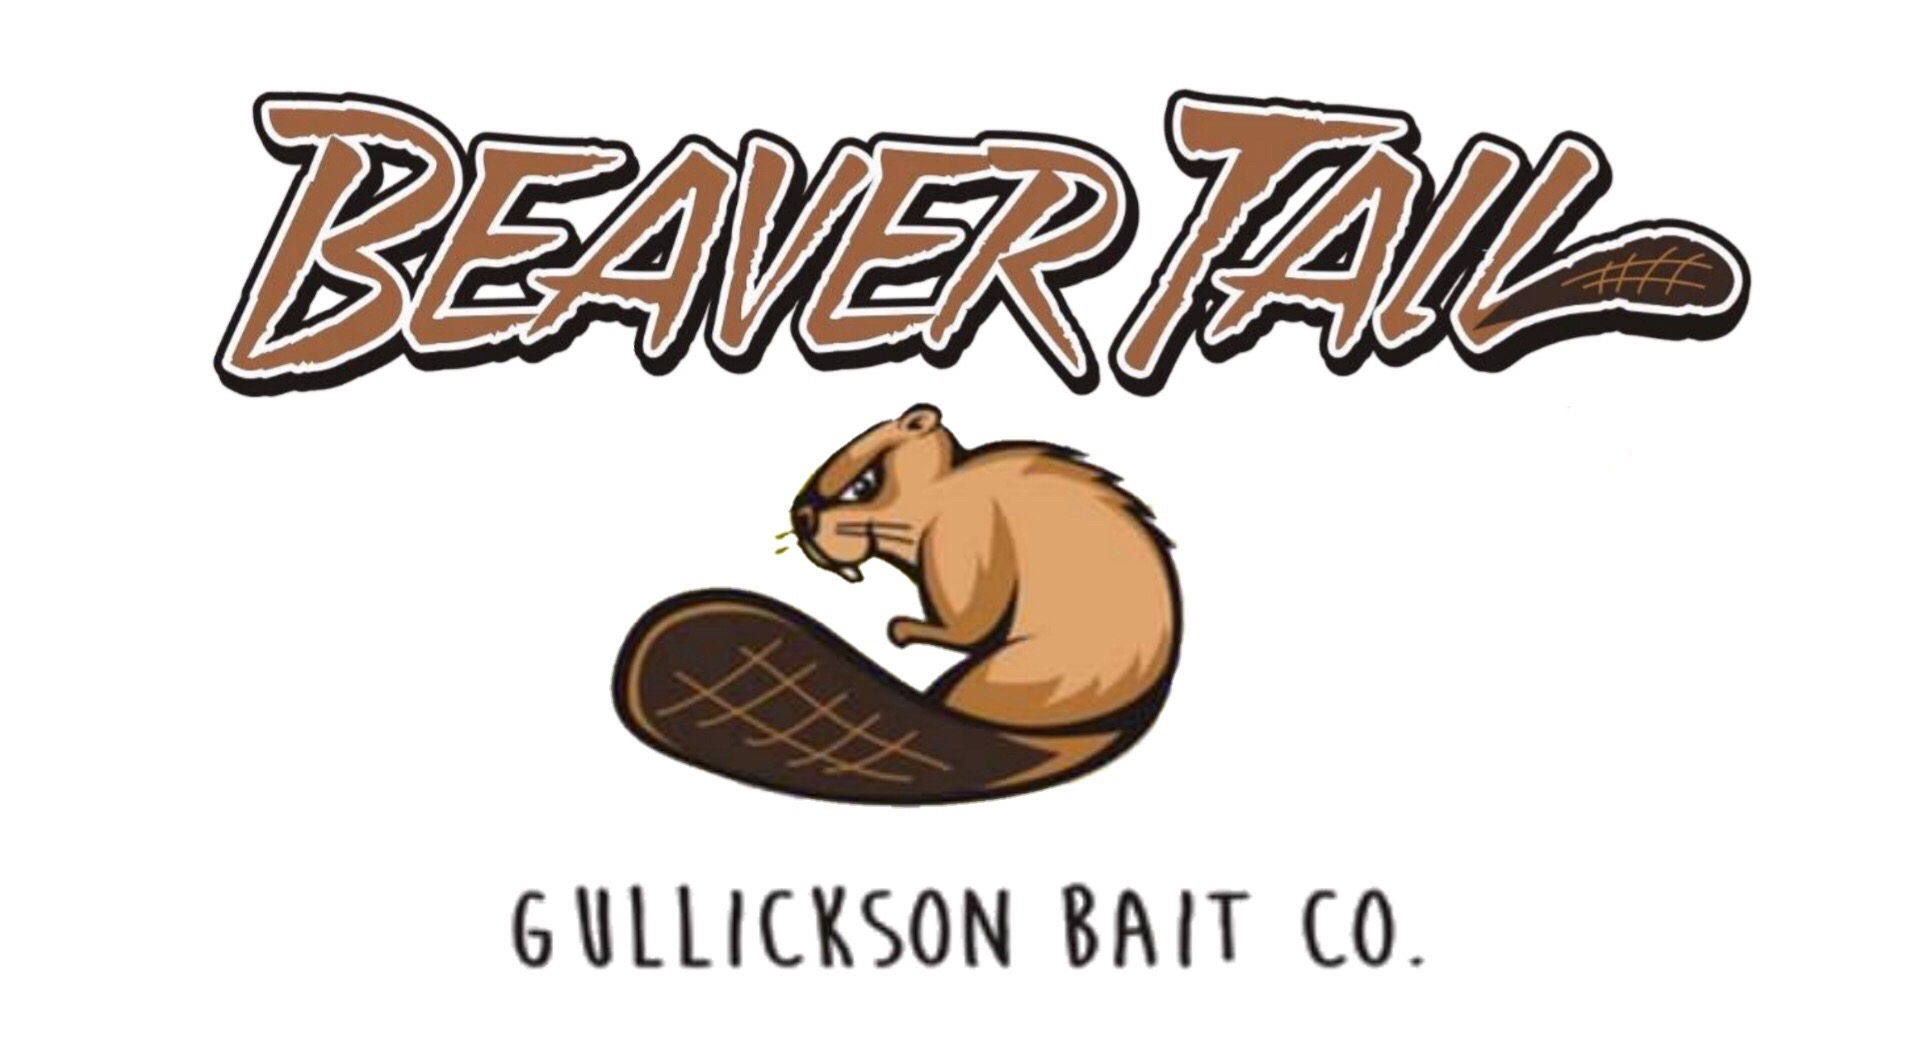 Gullickson Bait Co